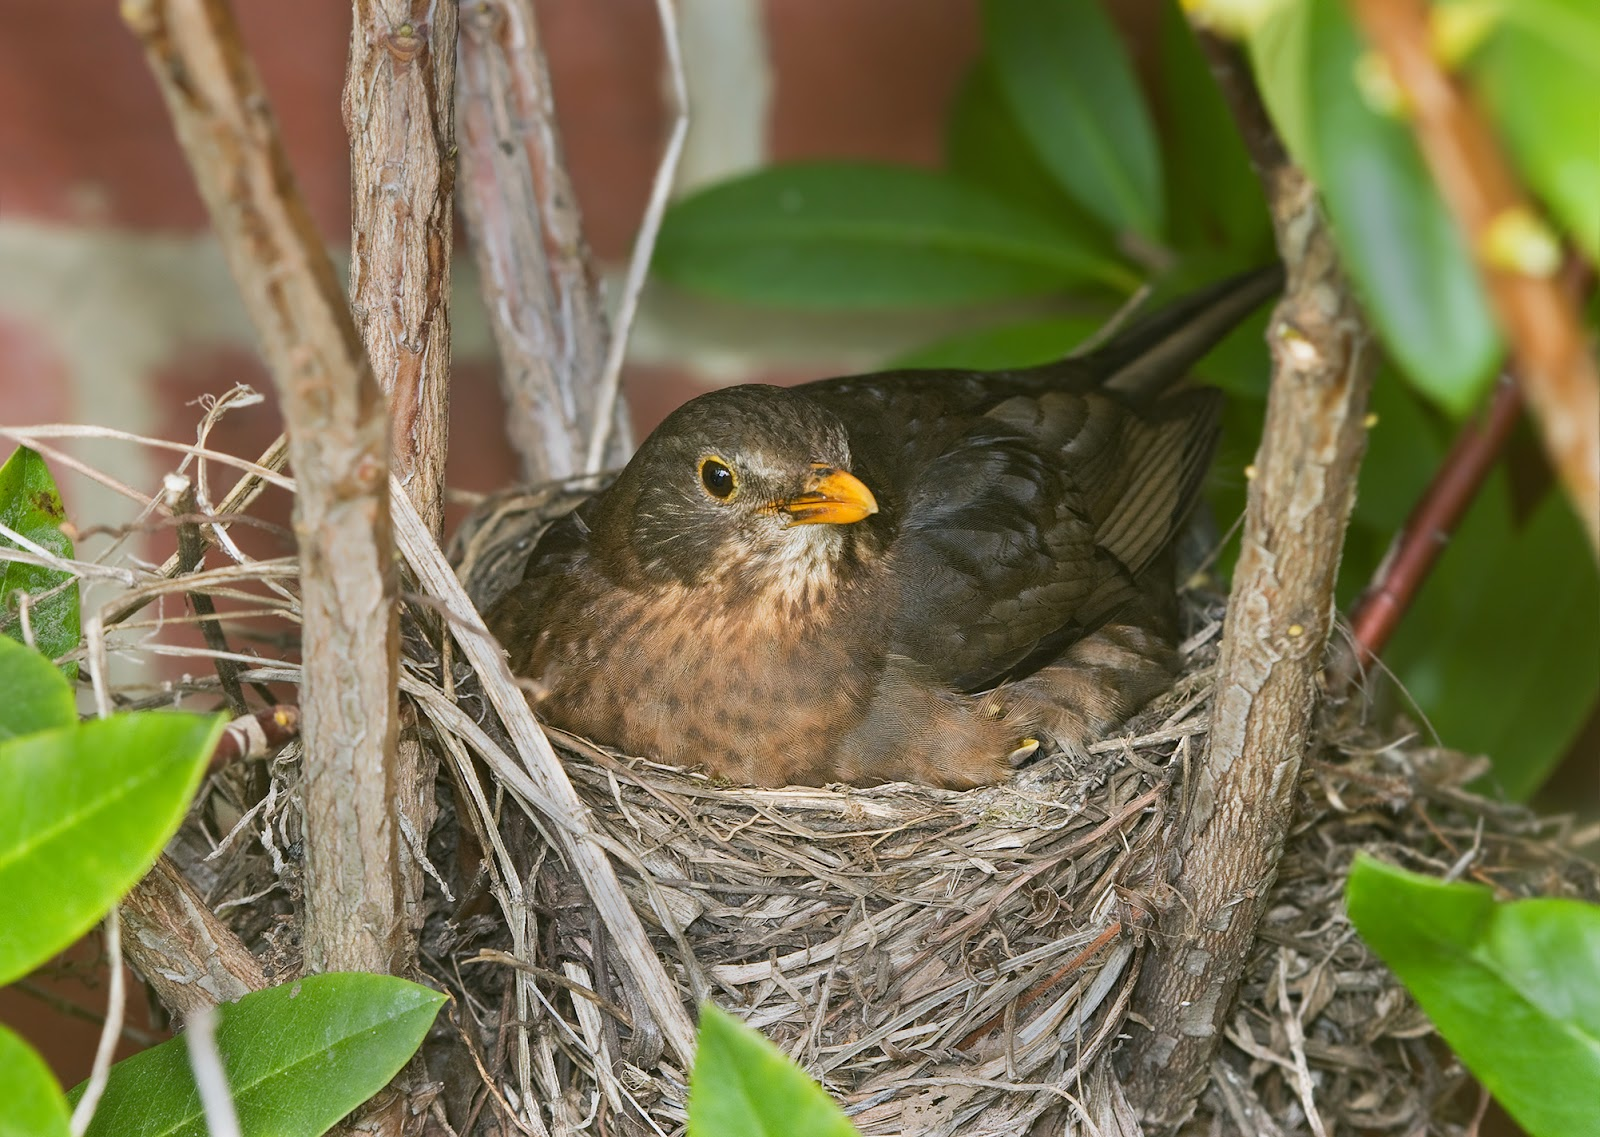 Cup nest of a common blackbird